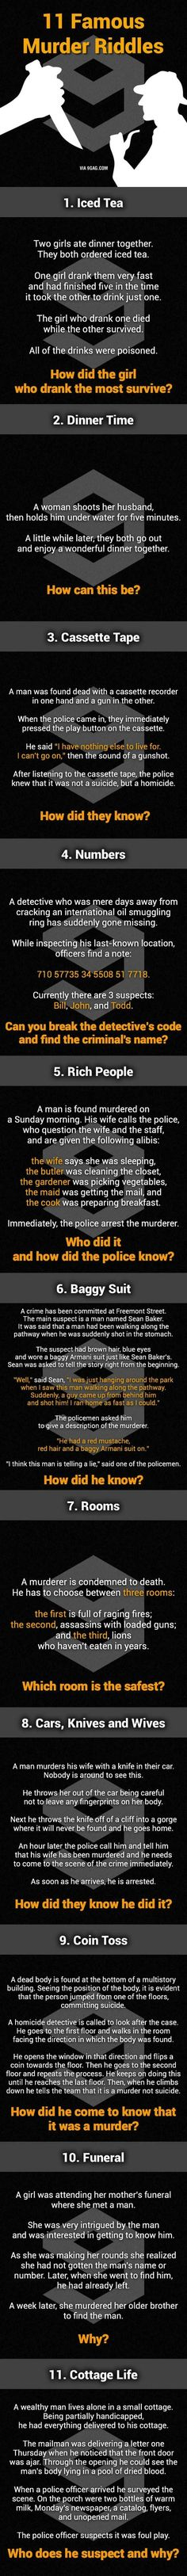 Can You Solve Them All? Can You Solve Them Murder Mystery Riddles. Can You Solve Them All? Mystery Riddles, Mystery Novels, Cultura Nerd, Murder Mysteries, Cozy Mysteries, Humor, Mind Blown, Best Funny Pictures, Simple Pictures